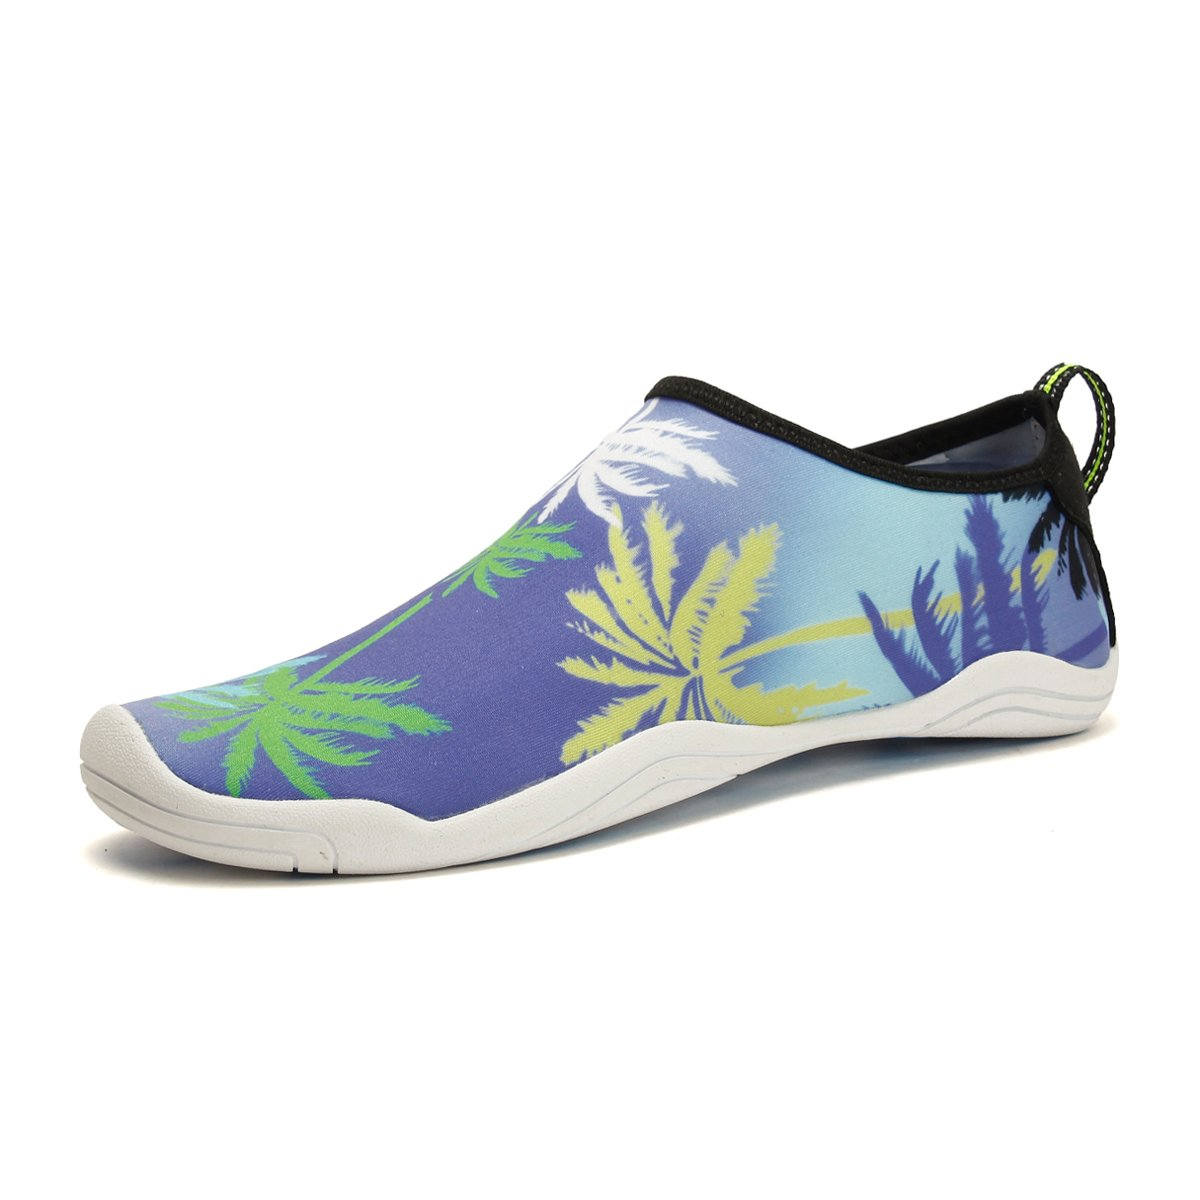 CJZHE Couple Swimming Wading Non-Slip Shoes Casual Fashion Stretch Lightweight Beach Shoes (11 B (M) US, Purple)